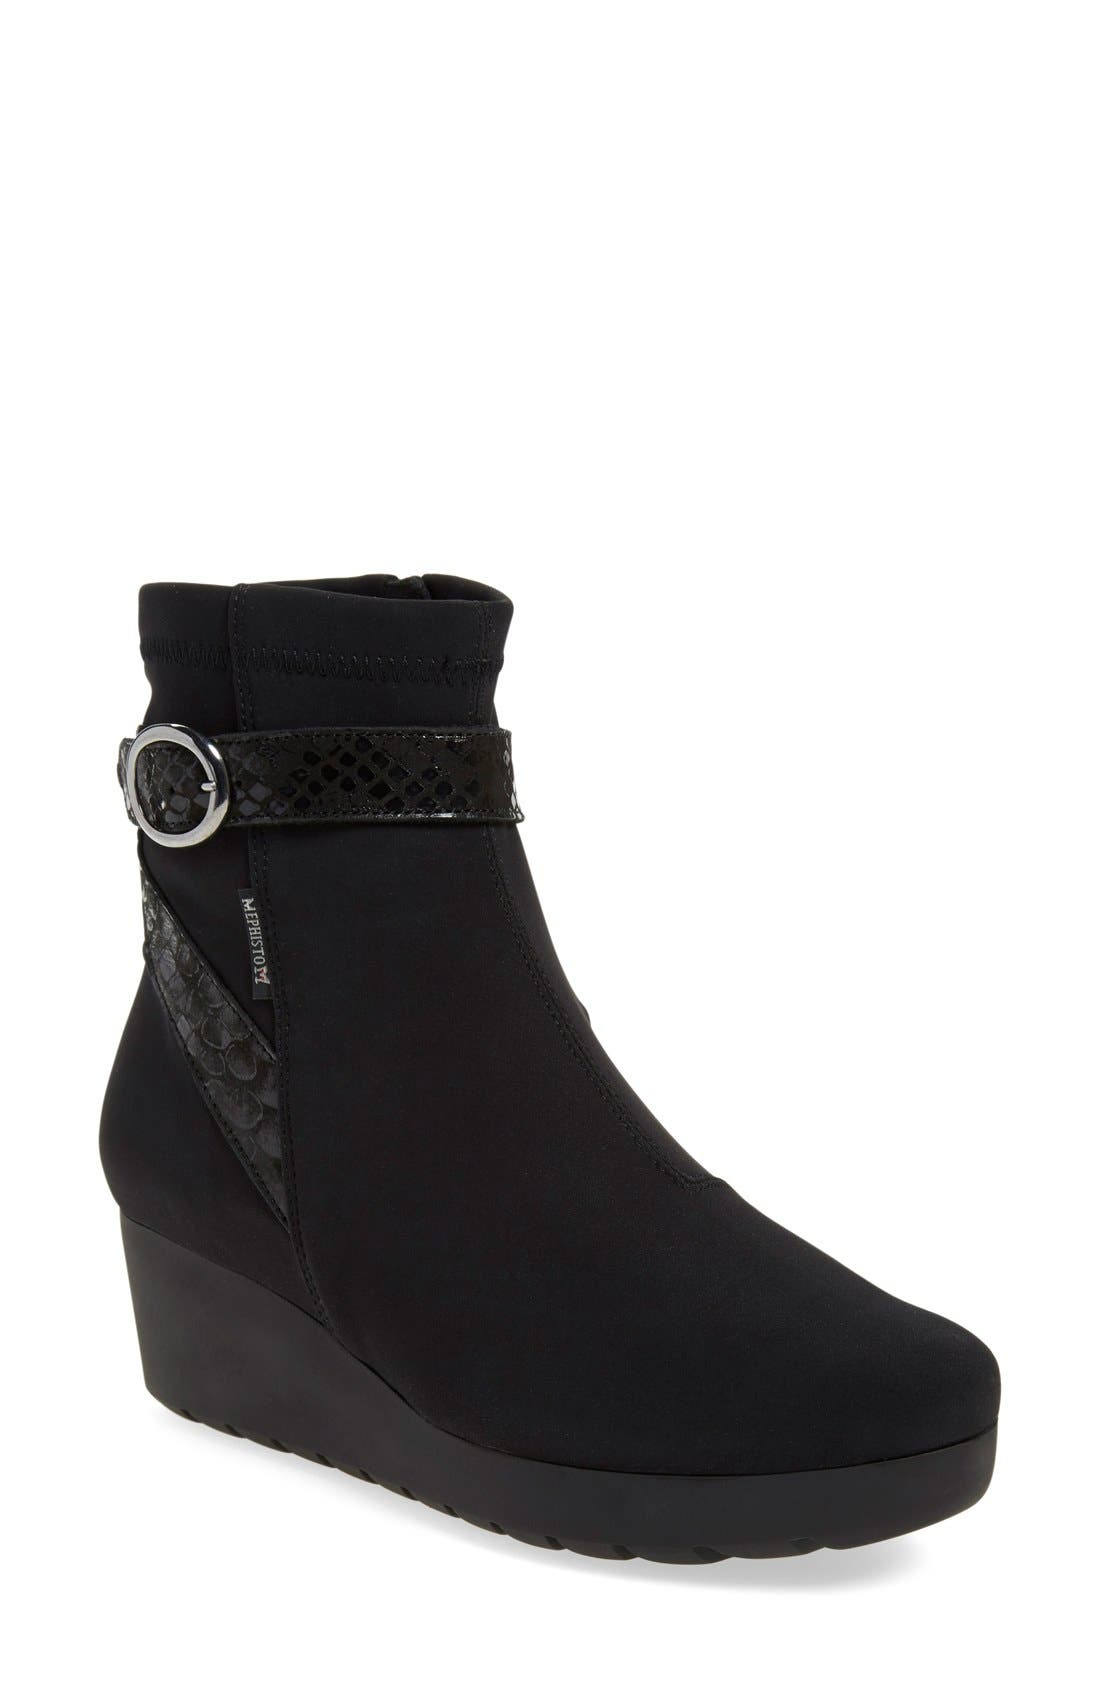 'Tyba' Waterproof Wedge Bootie,                         Main,                         color,